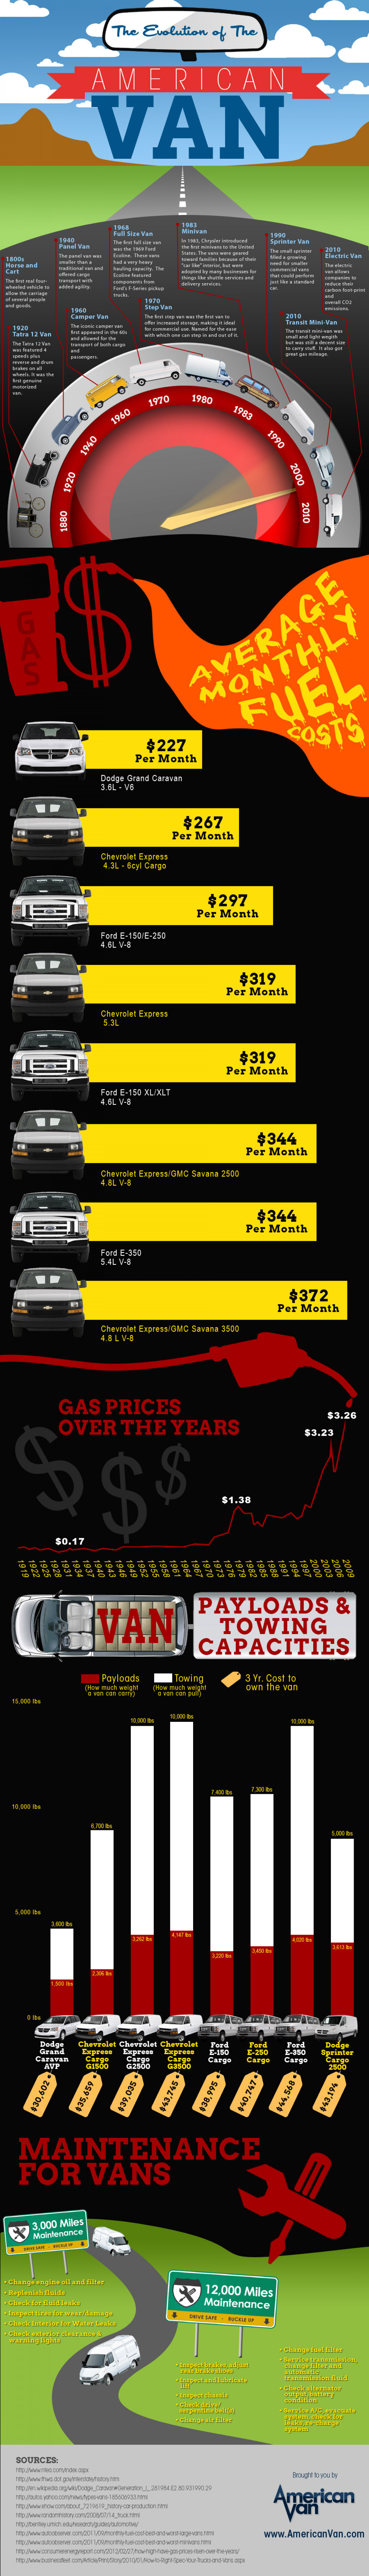 The Evolution of The American Van Infographic